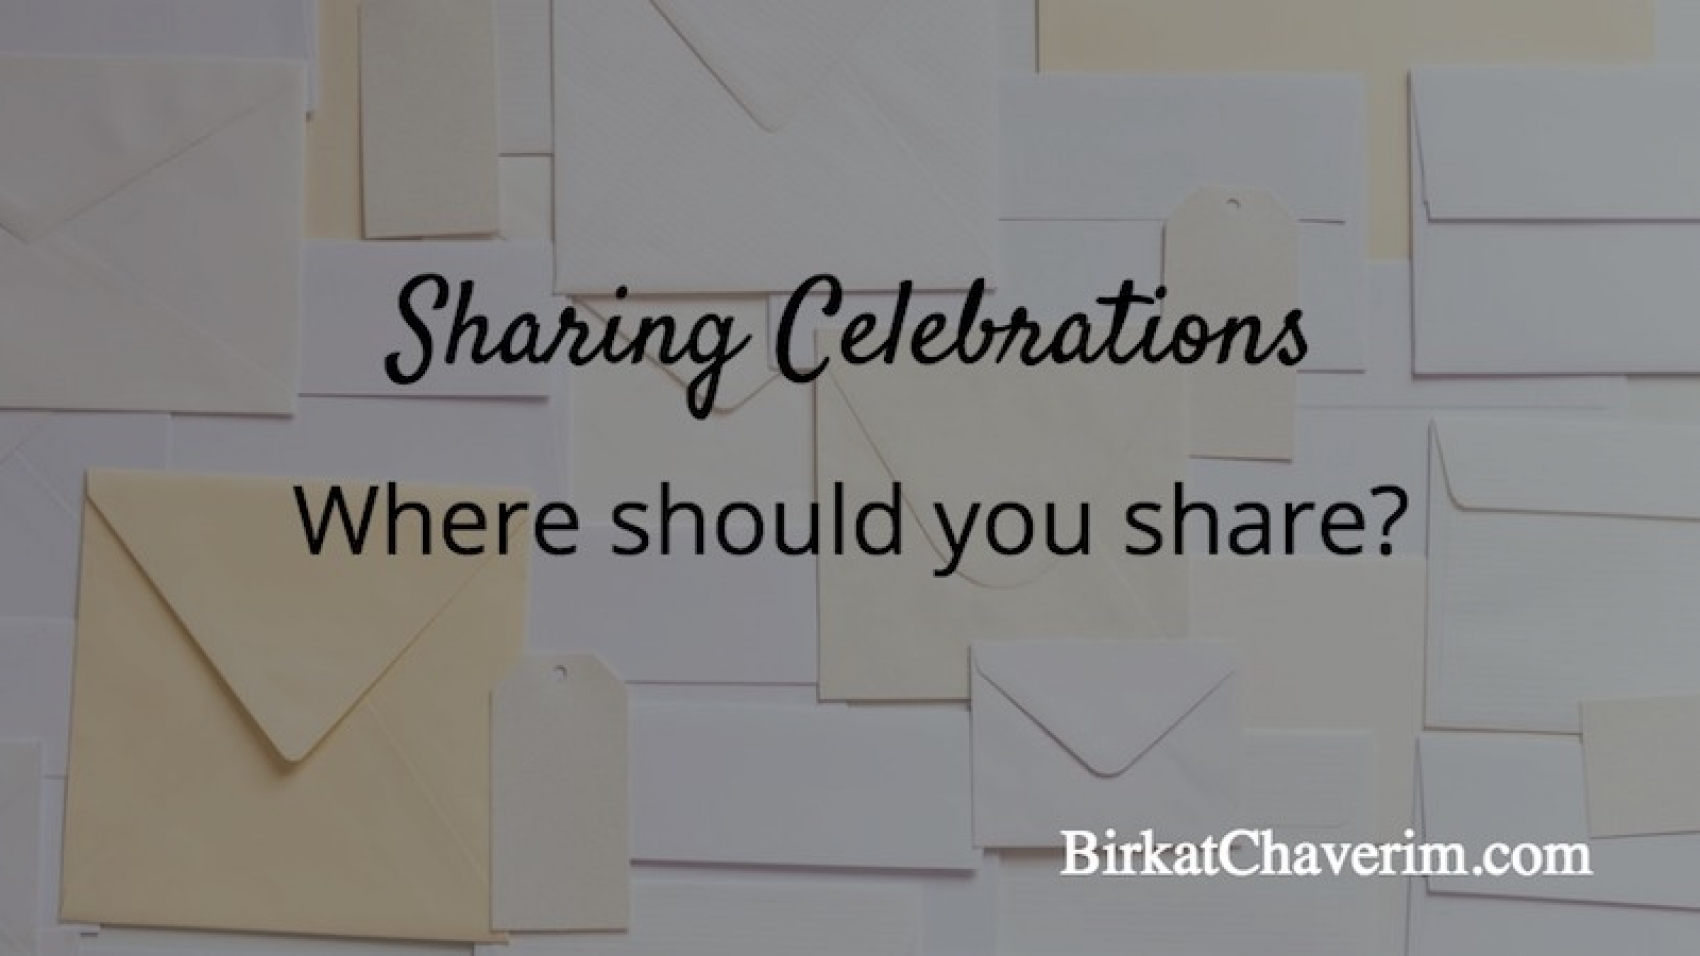 Where should you share your celebration invitation?